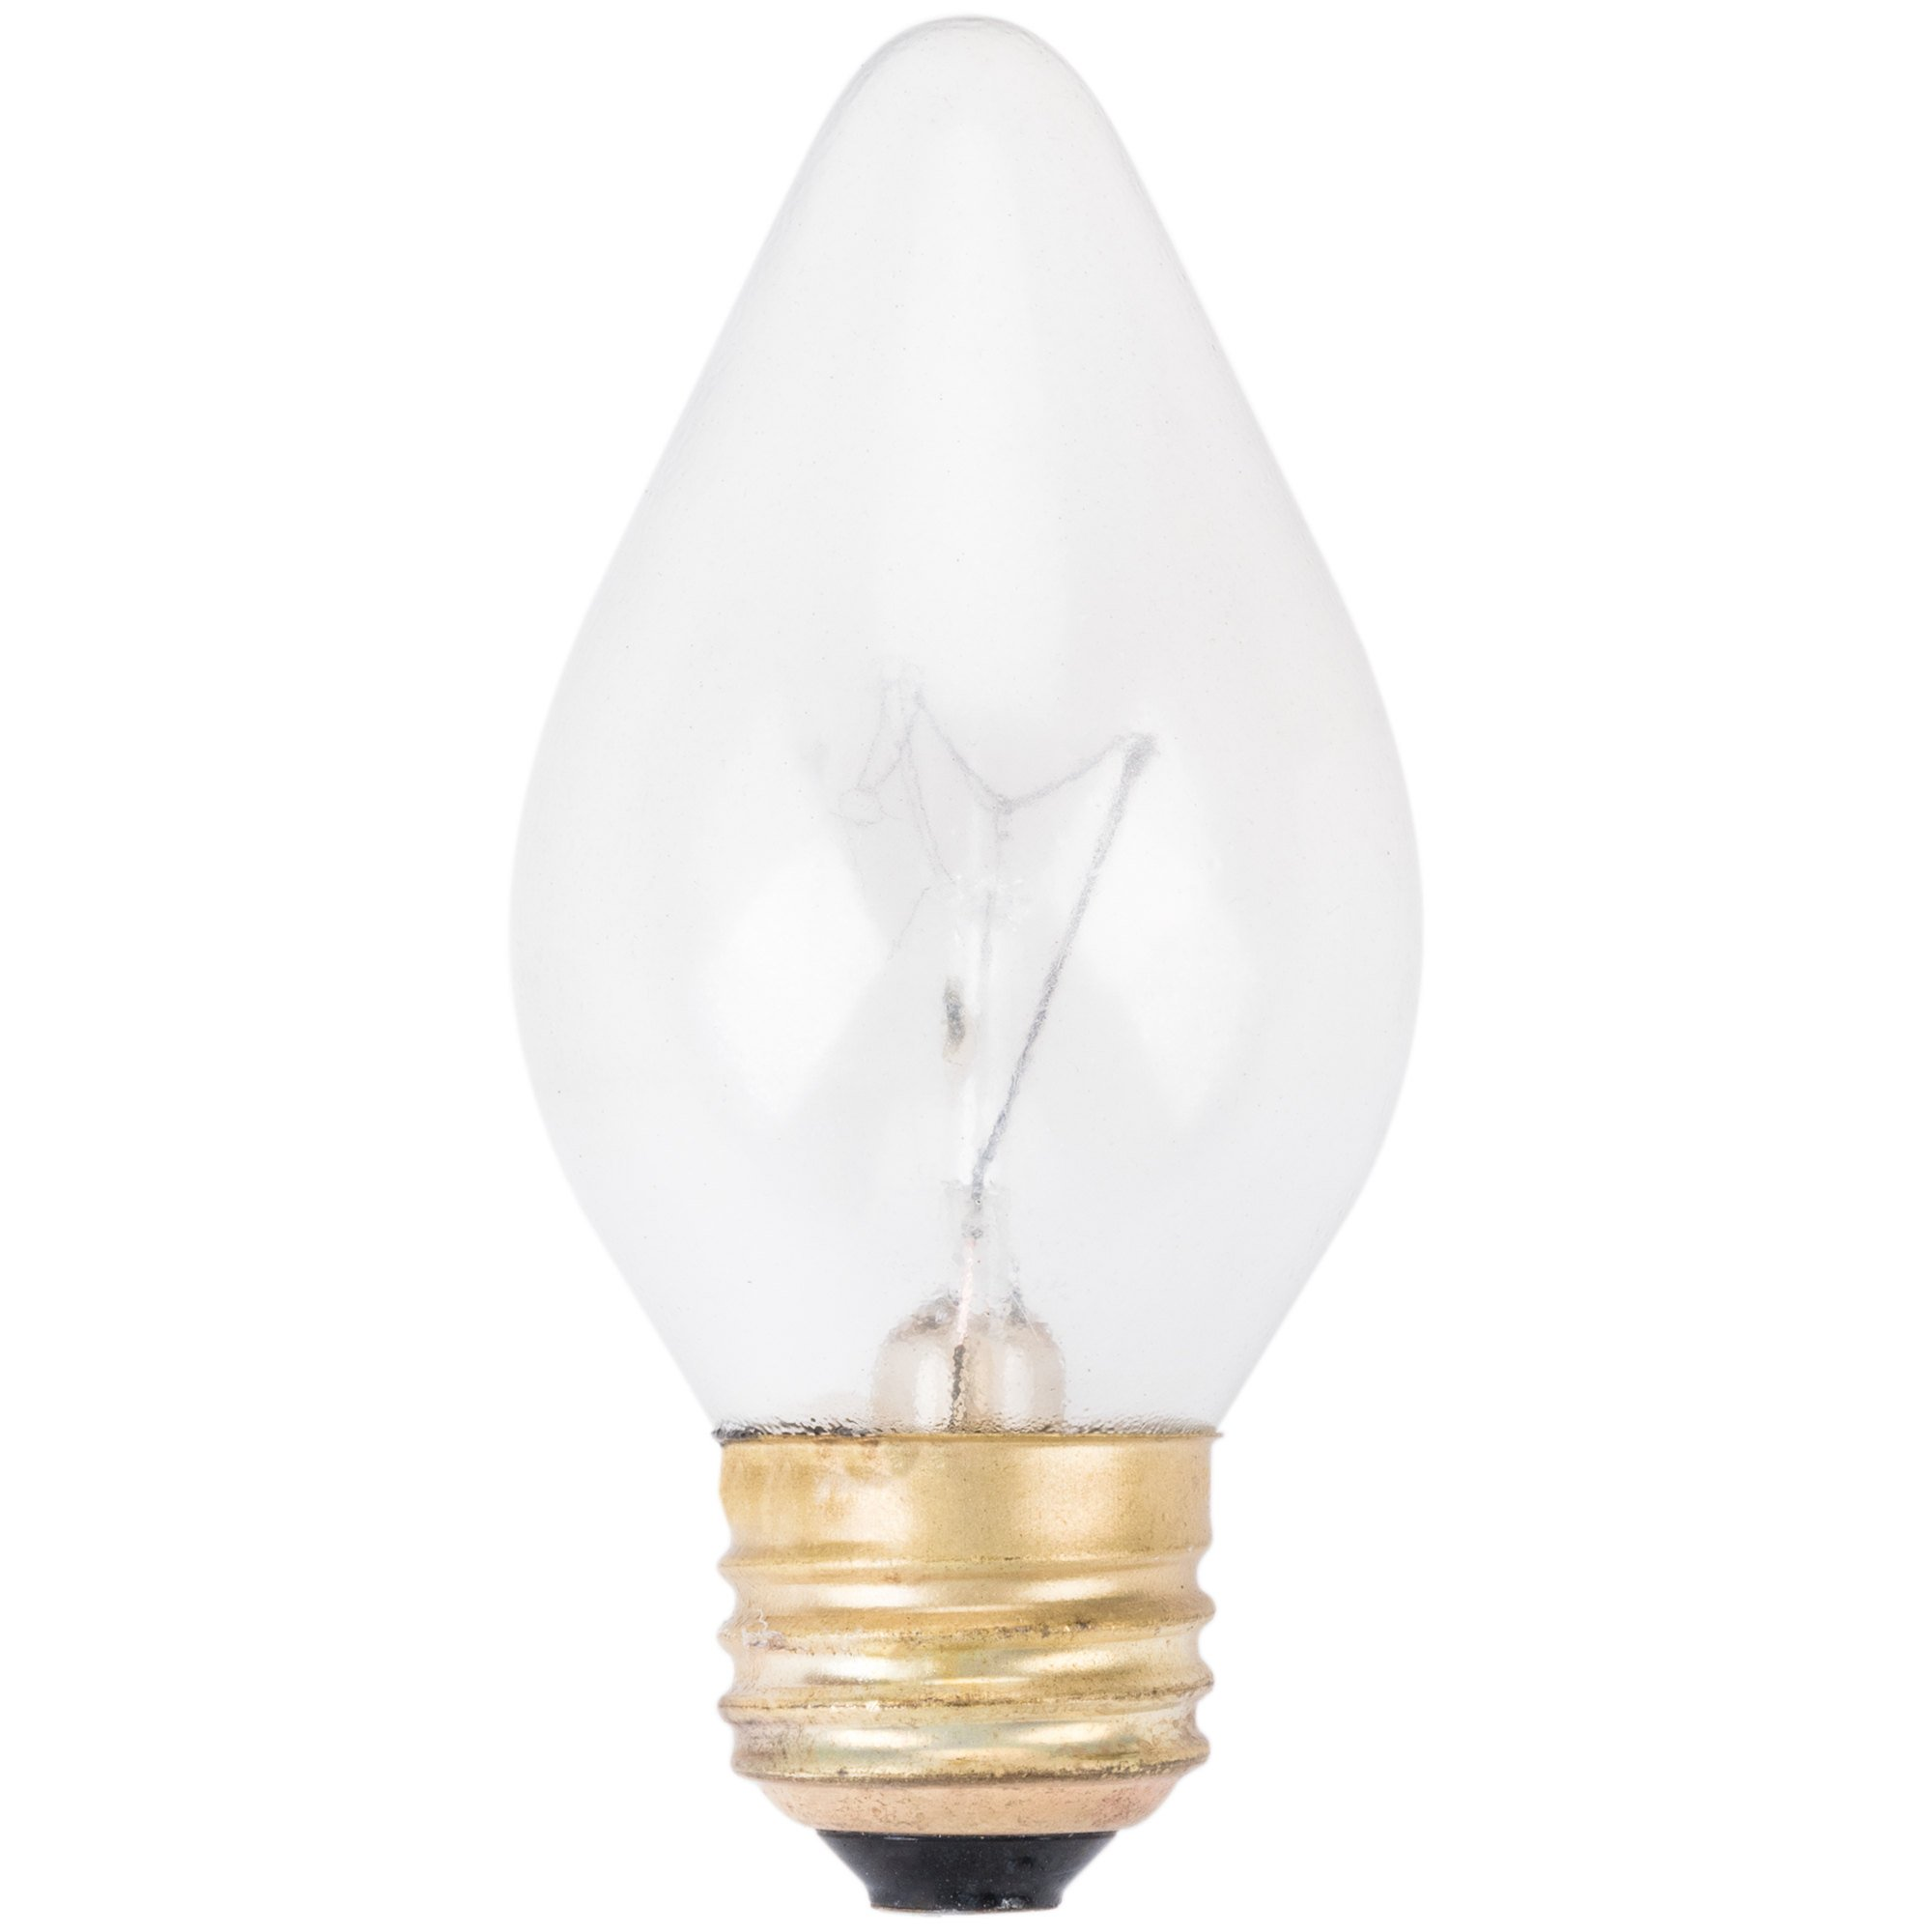 Norman Lamps PFA-60C15CL120Vx10 Shatter Resistant 60W 120V Light Bulb, Degrees_Fahrenheit, to Volts, Amps, (Pack of 10)